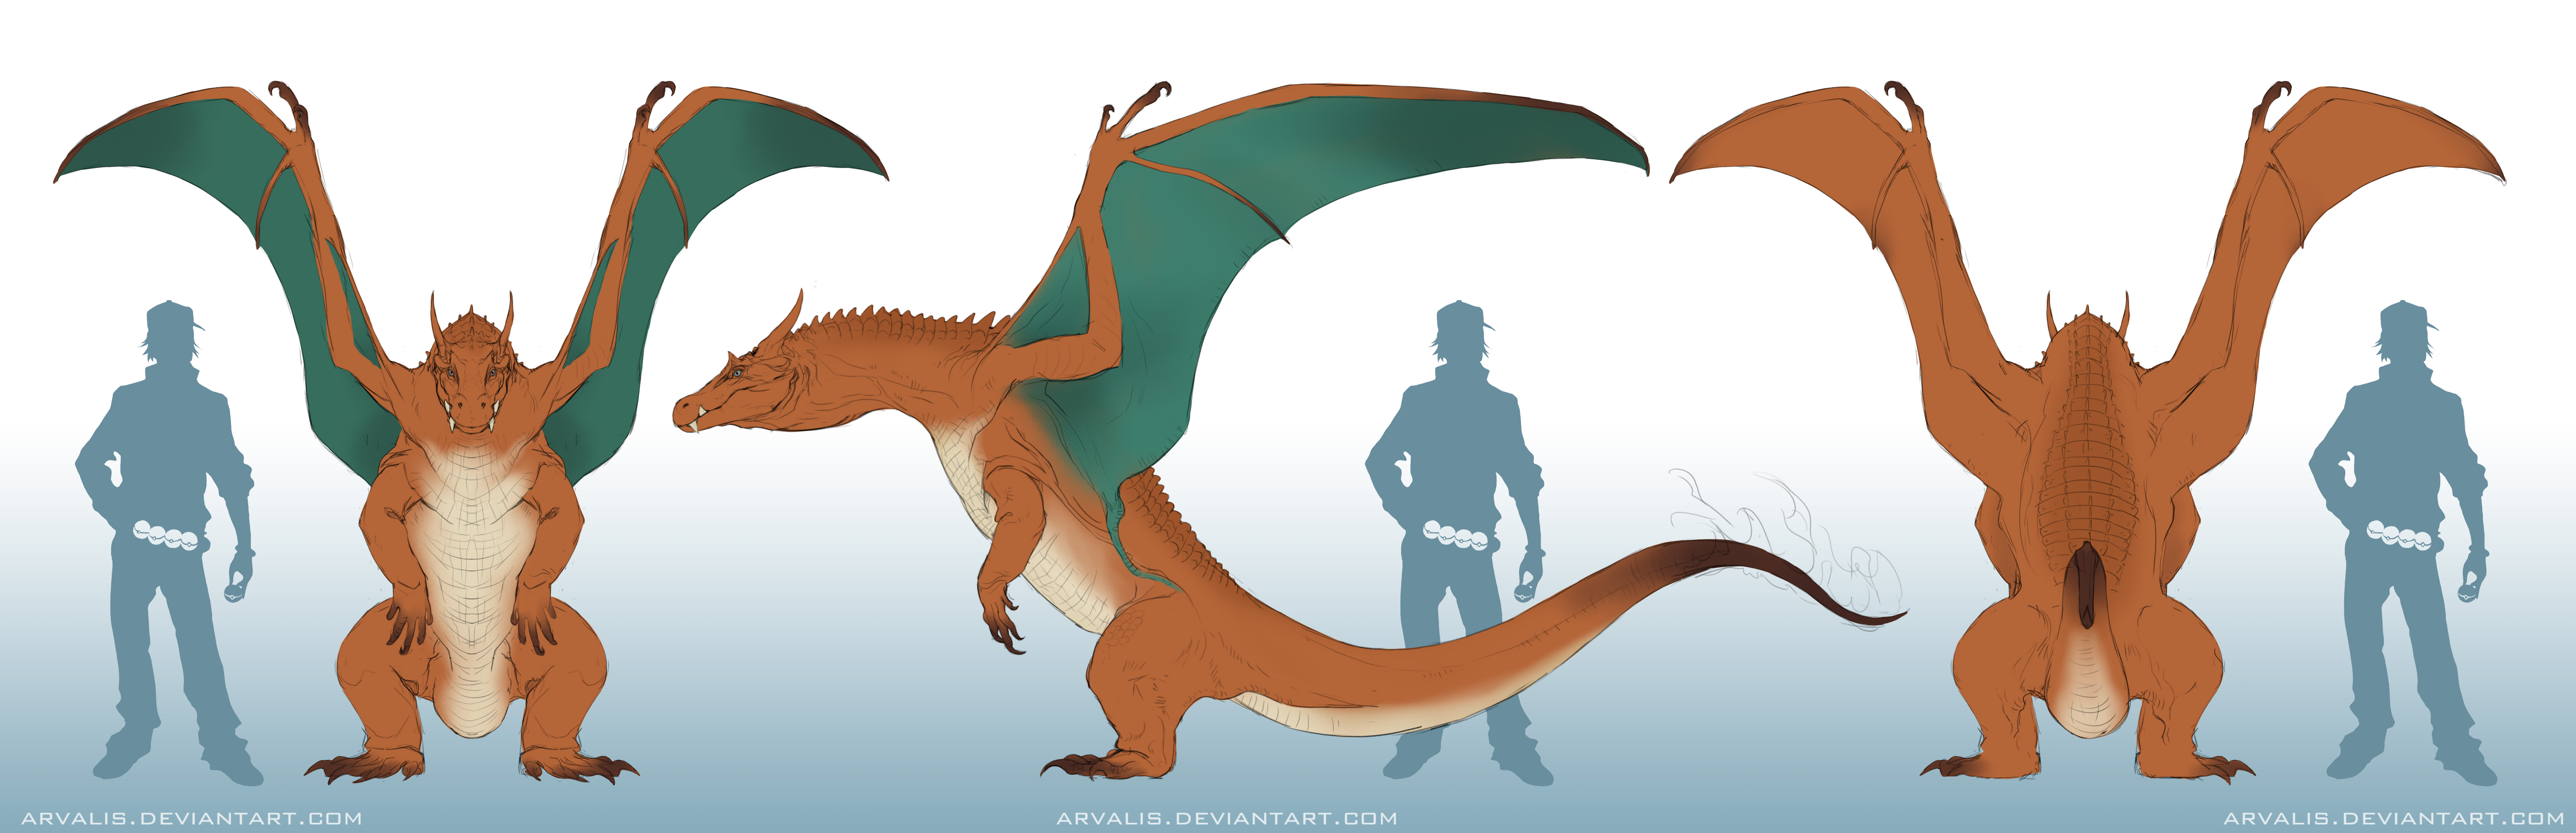 Charizard Orthographic by arvalis on DeviantArt Realistic Pokemon Charizard